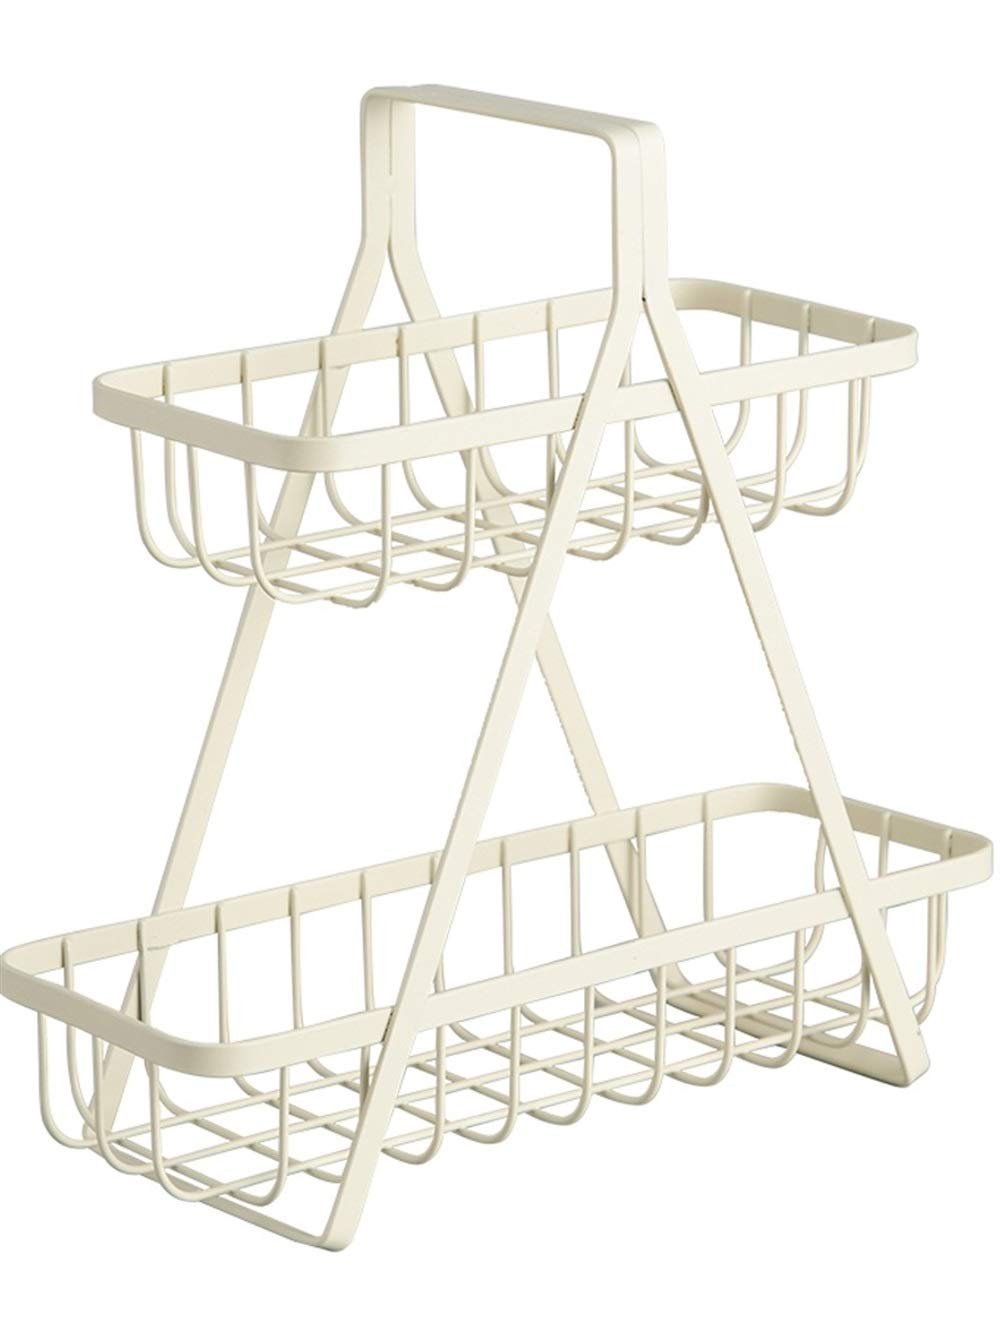 YChoice Rack Decor Japanese Desktop Iron Racks Double Kitchen Seasoning Multifunctional Storage Rack Home Finishing Shelf (Color : White)